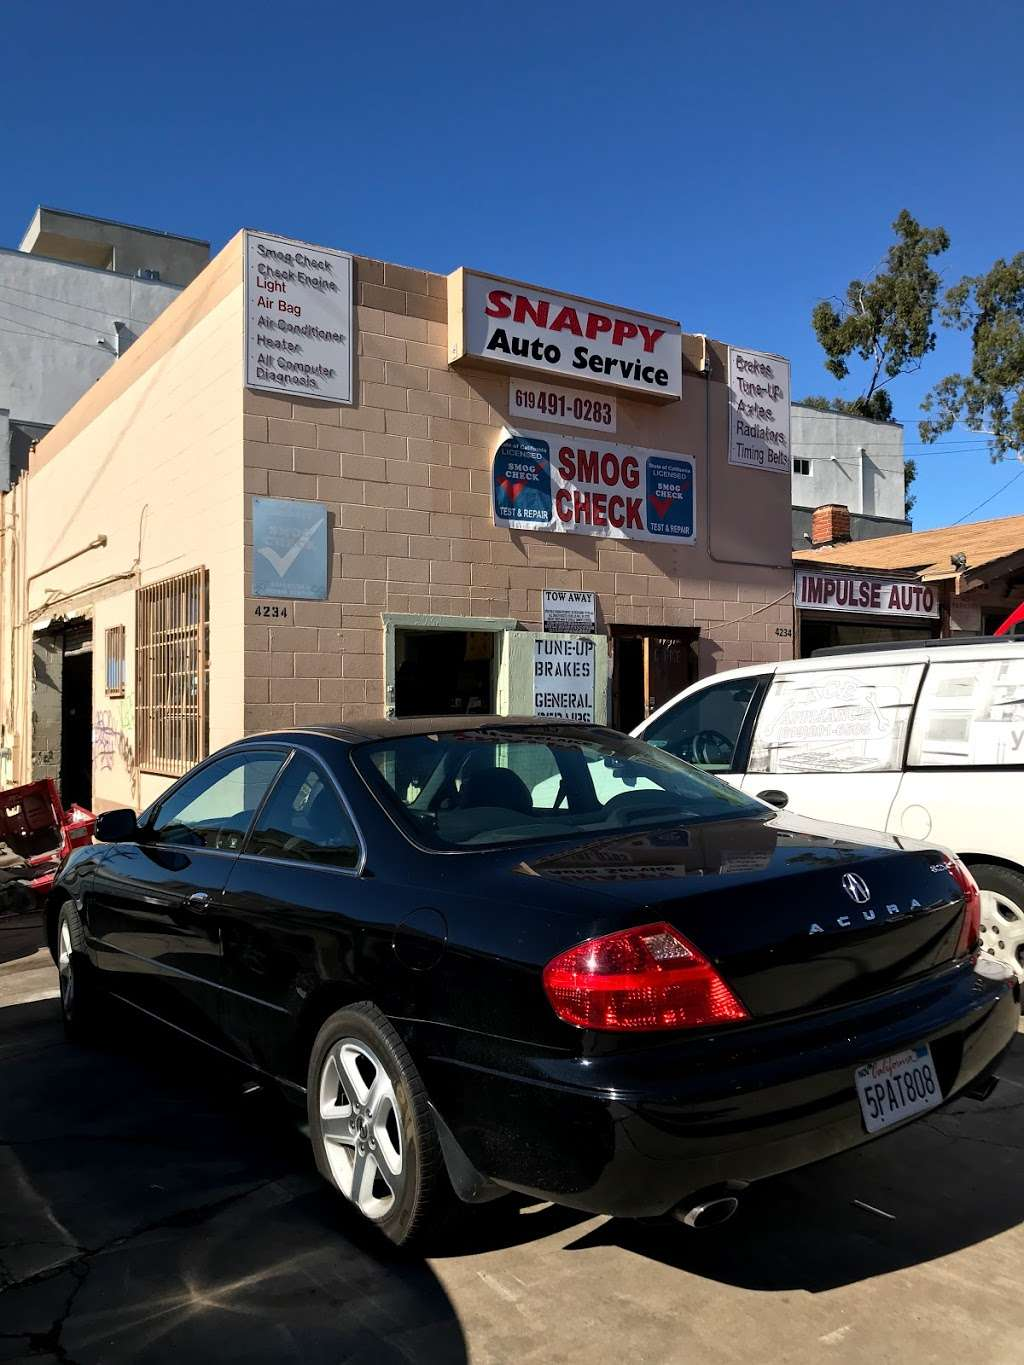 Snappy Auto Repair - car repair  | Photo 2 of 3 | Address: 4234 Mississippi St, San Diego, CA 92104, USA | Phone: (619) 491-0283